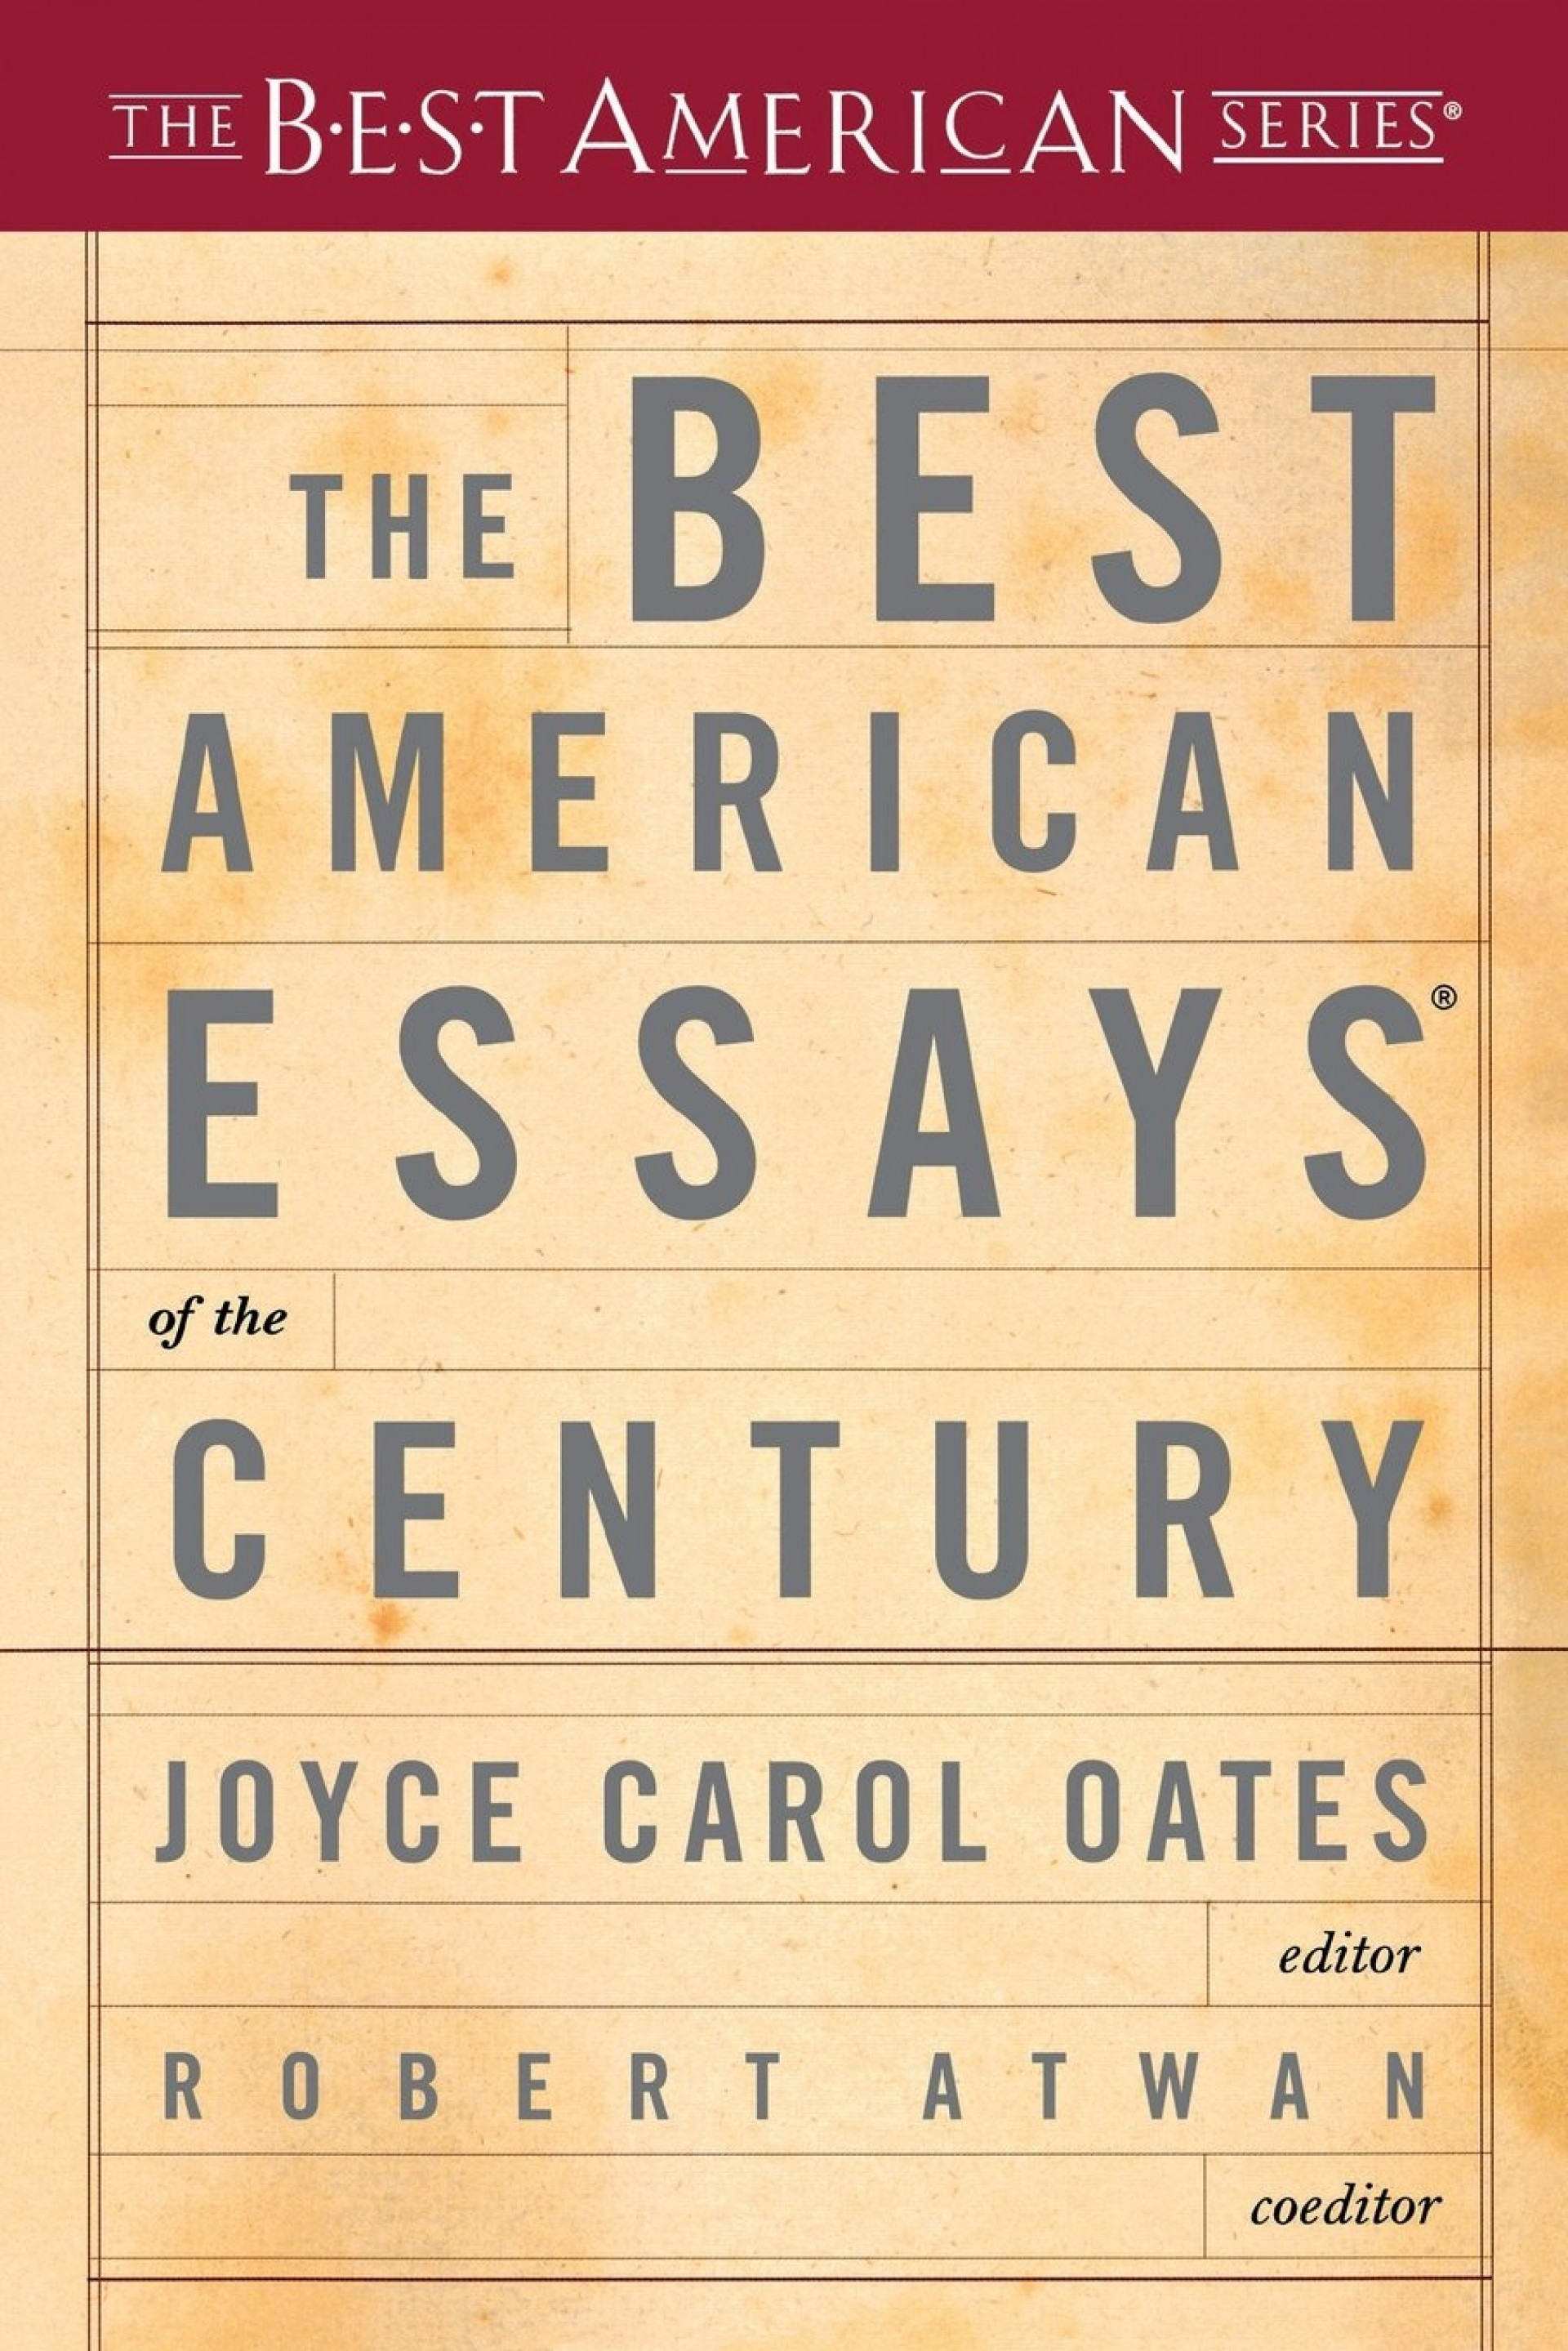 002 The Best American Essays Essay Example Wonderful 2018 Pdf 2017 Table Of Contents 2015 Free 1920